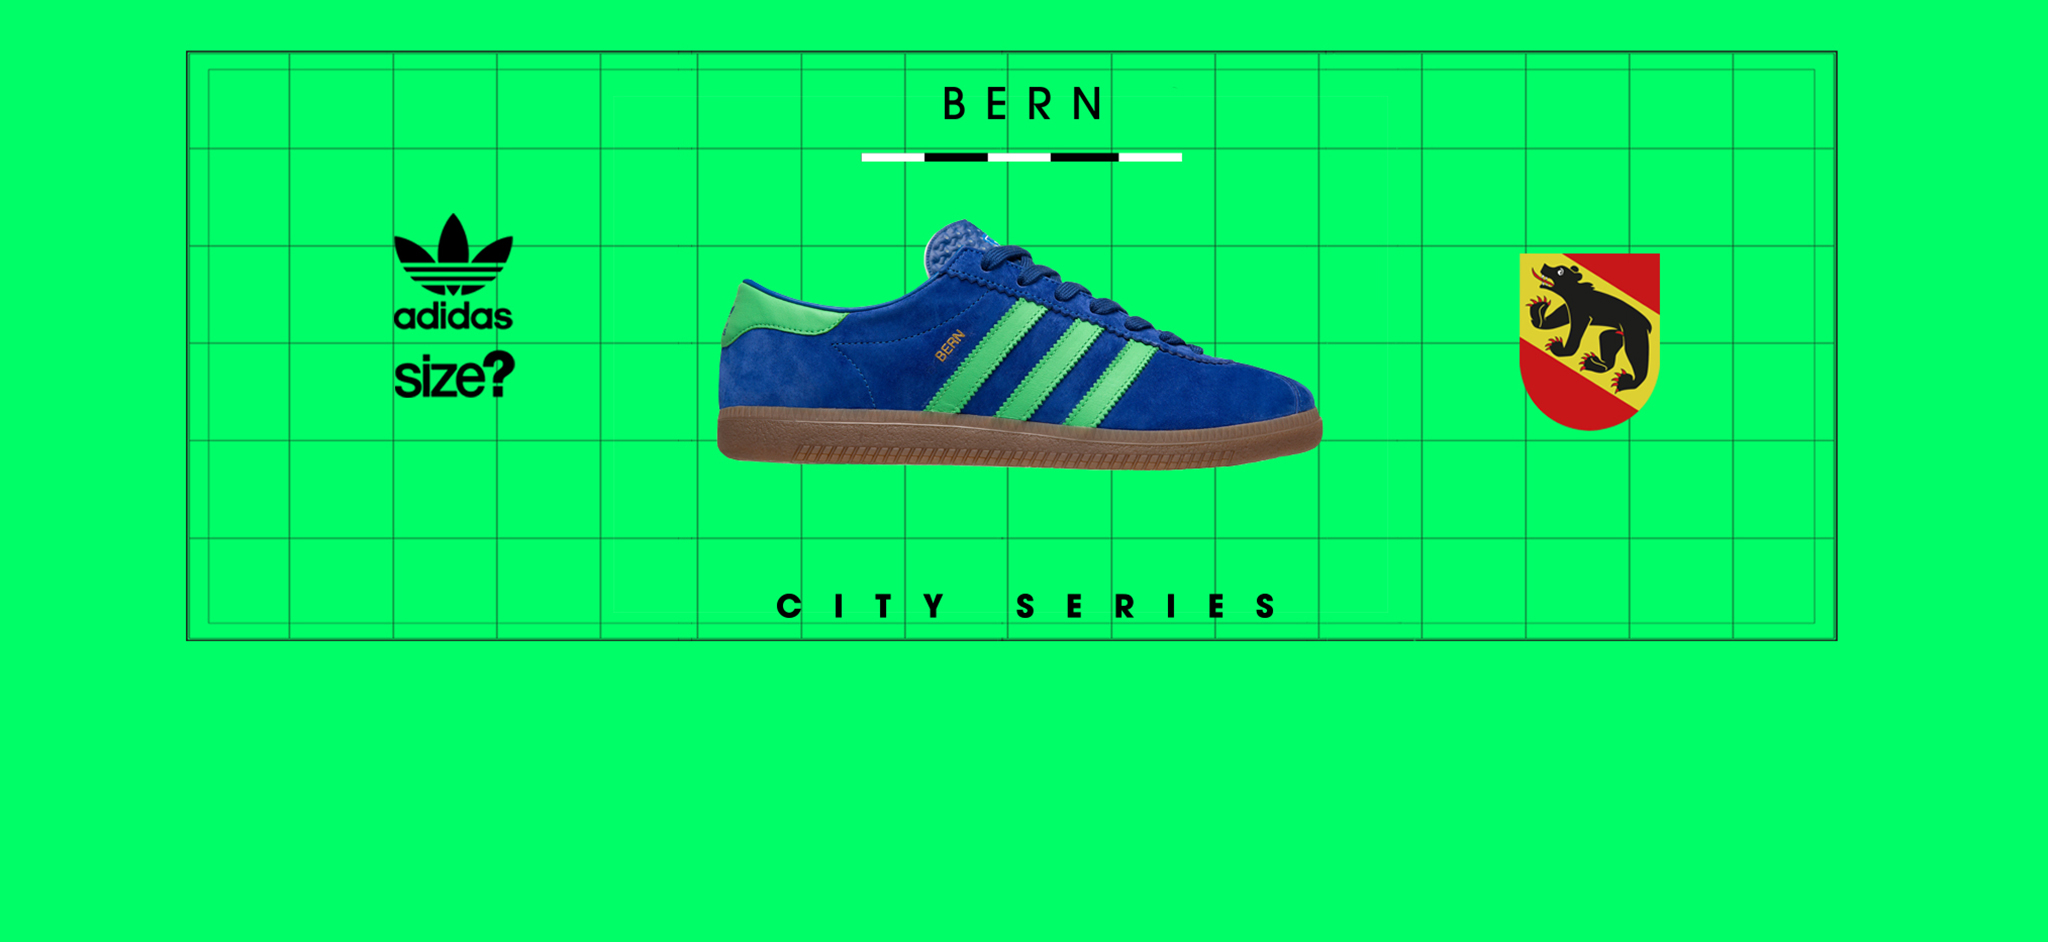 50918868e8544 adidas Originals Bern  City Series